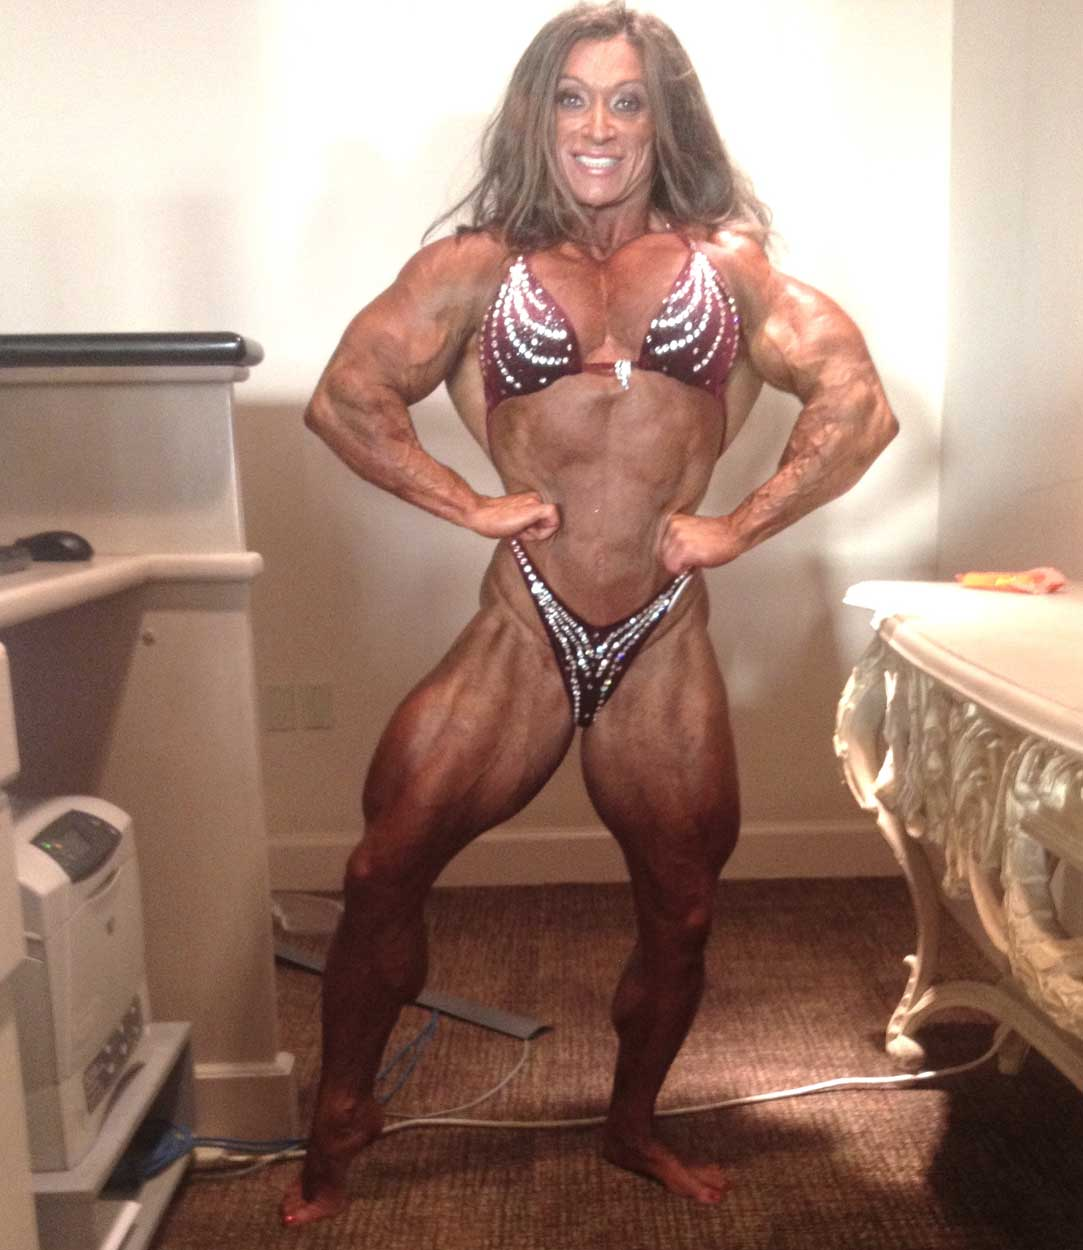 steroids body of a woman